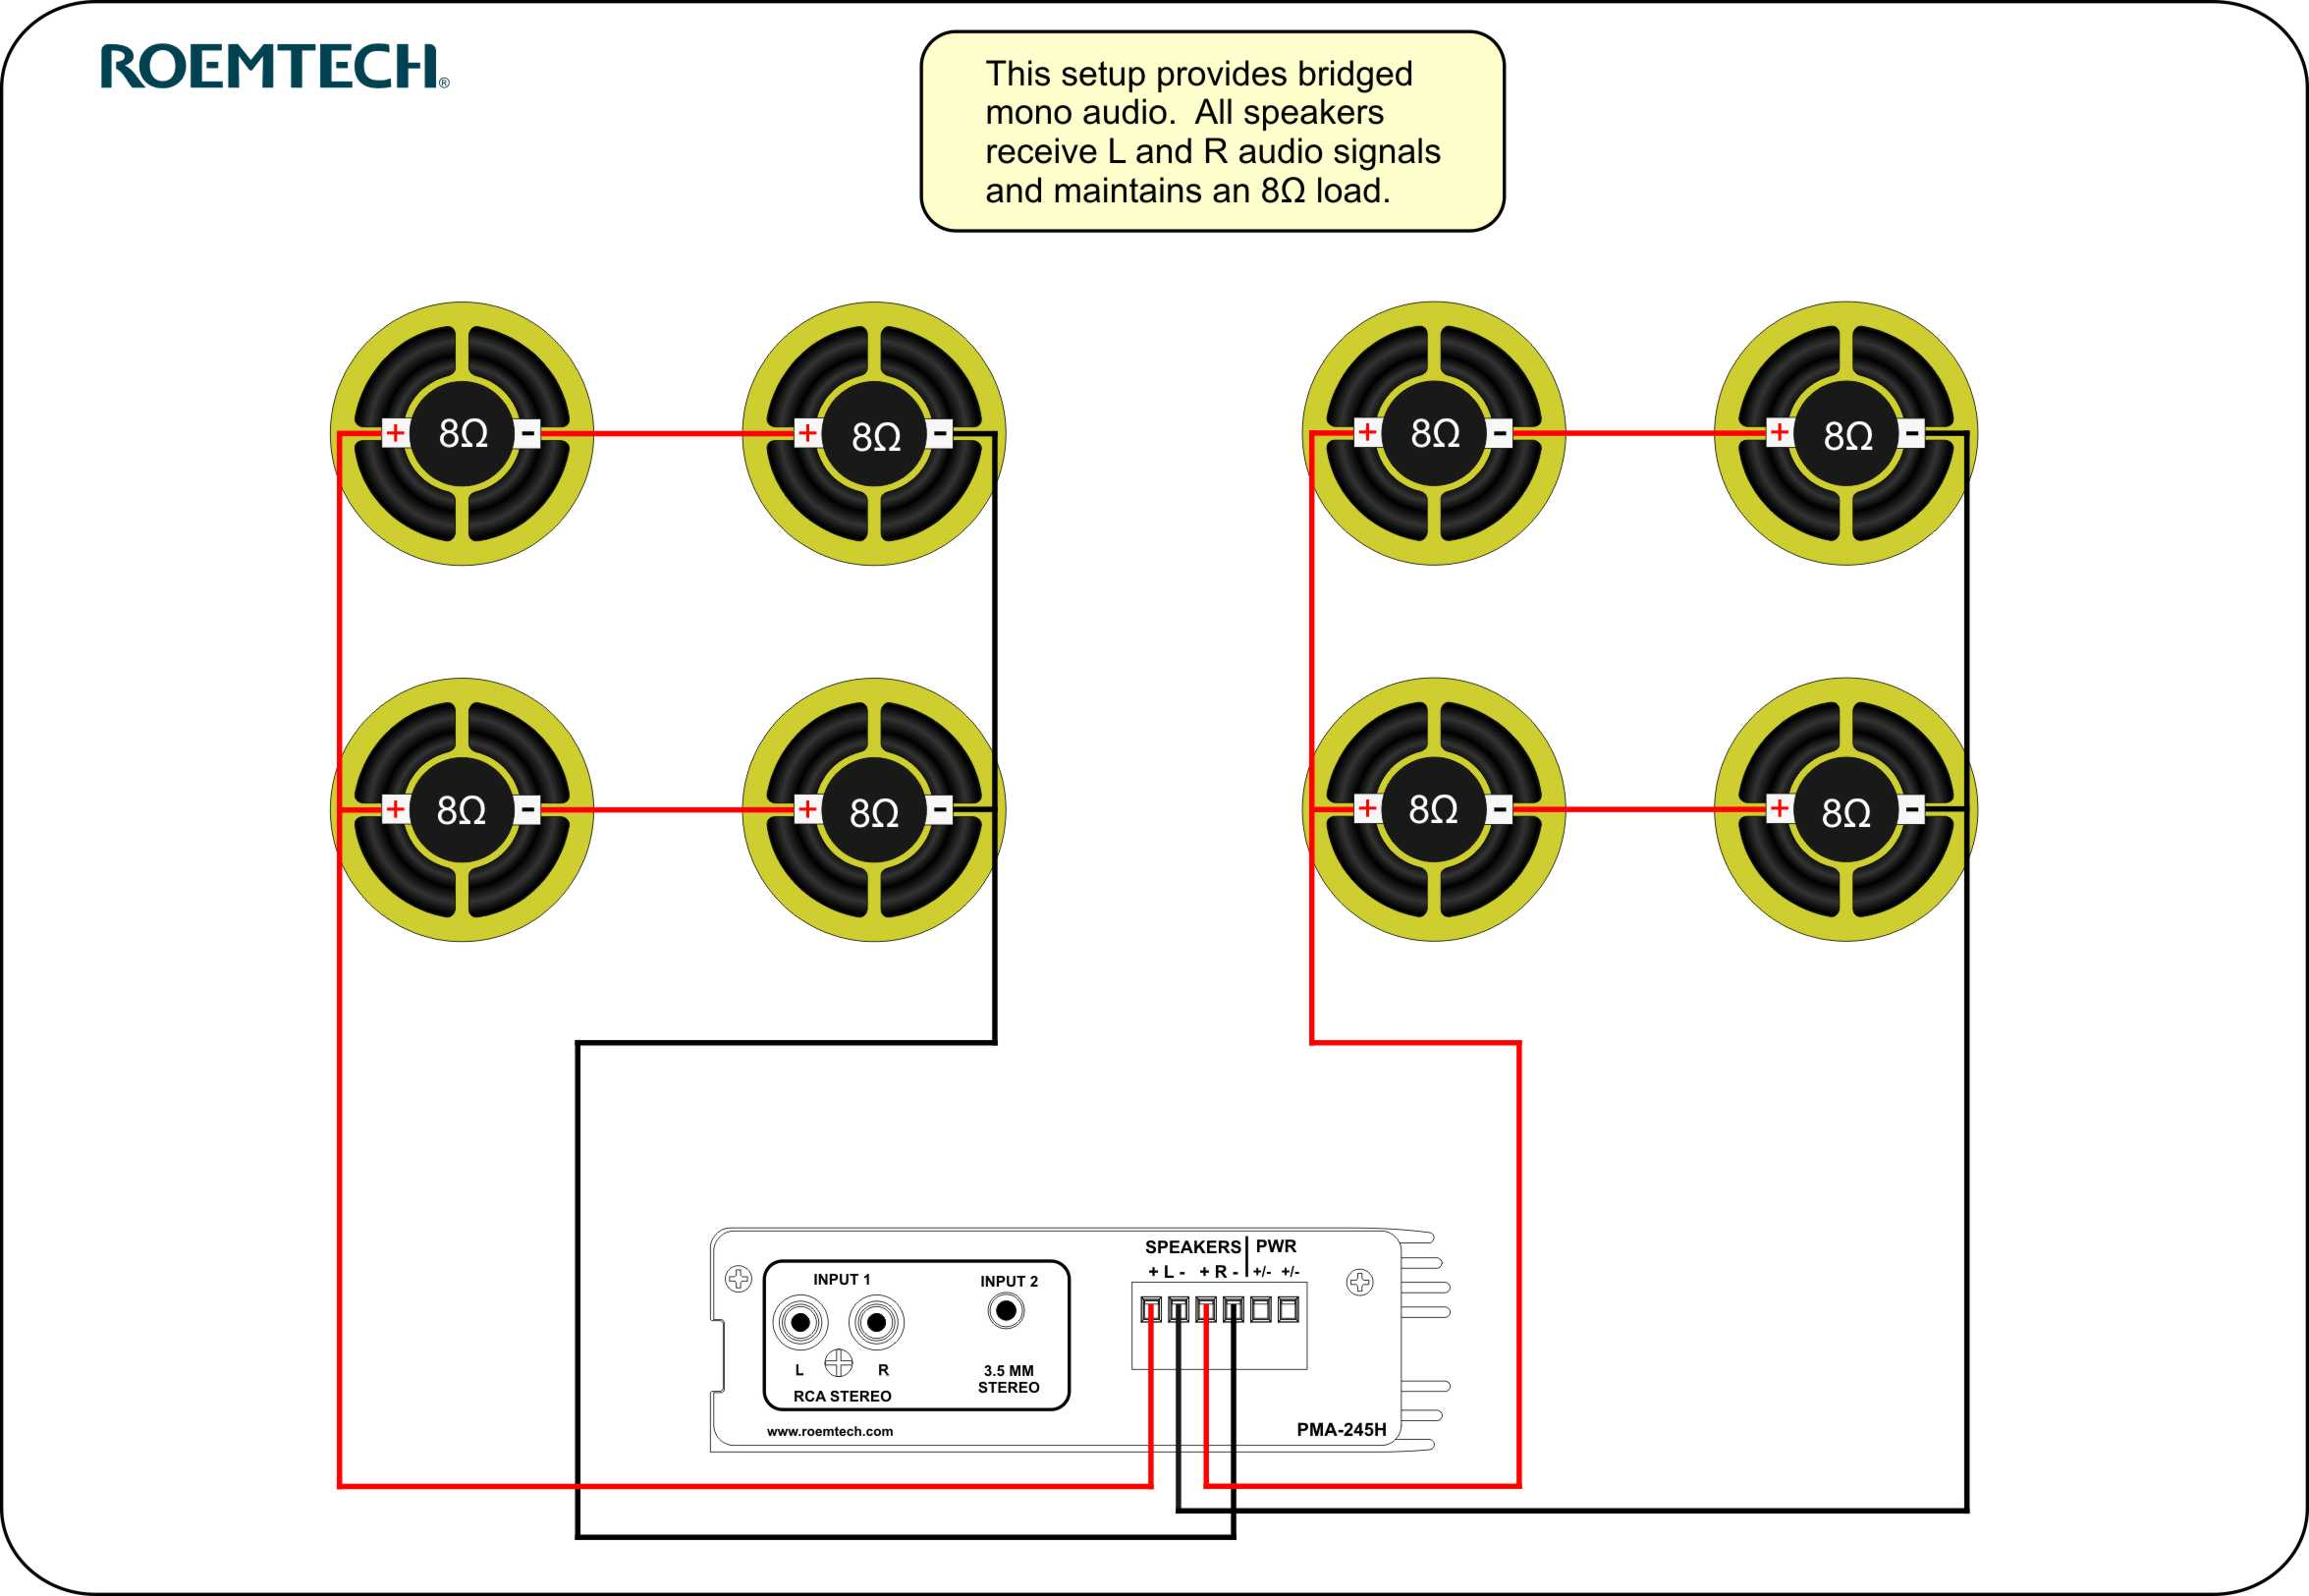 classroom_audio_multiple_speaker classroom audio systems multiple speaker wiring diagram speaker wiring diagram at couponss.co